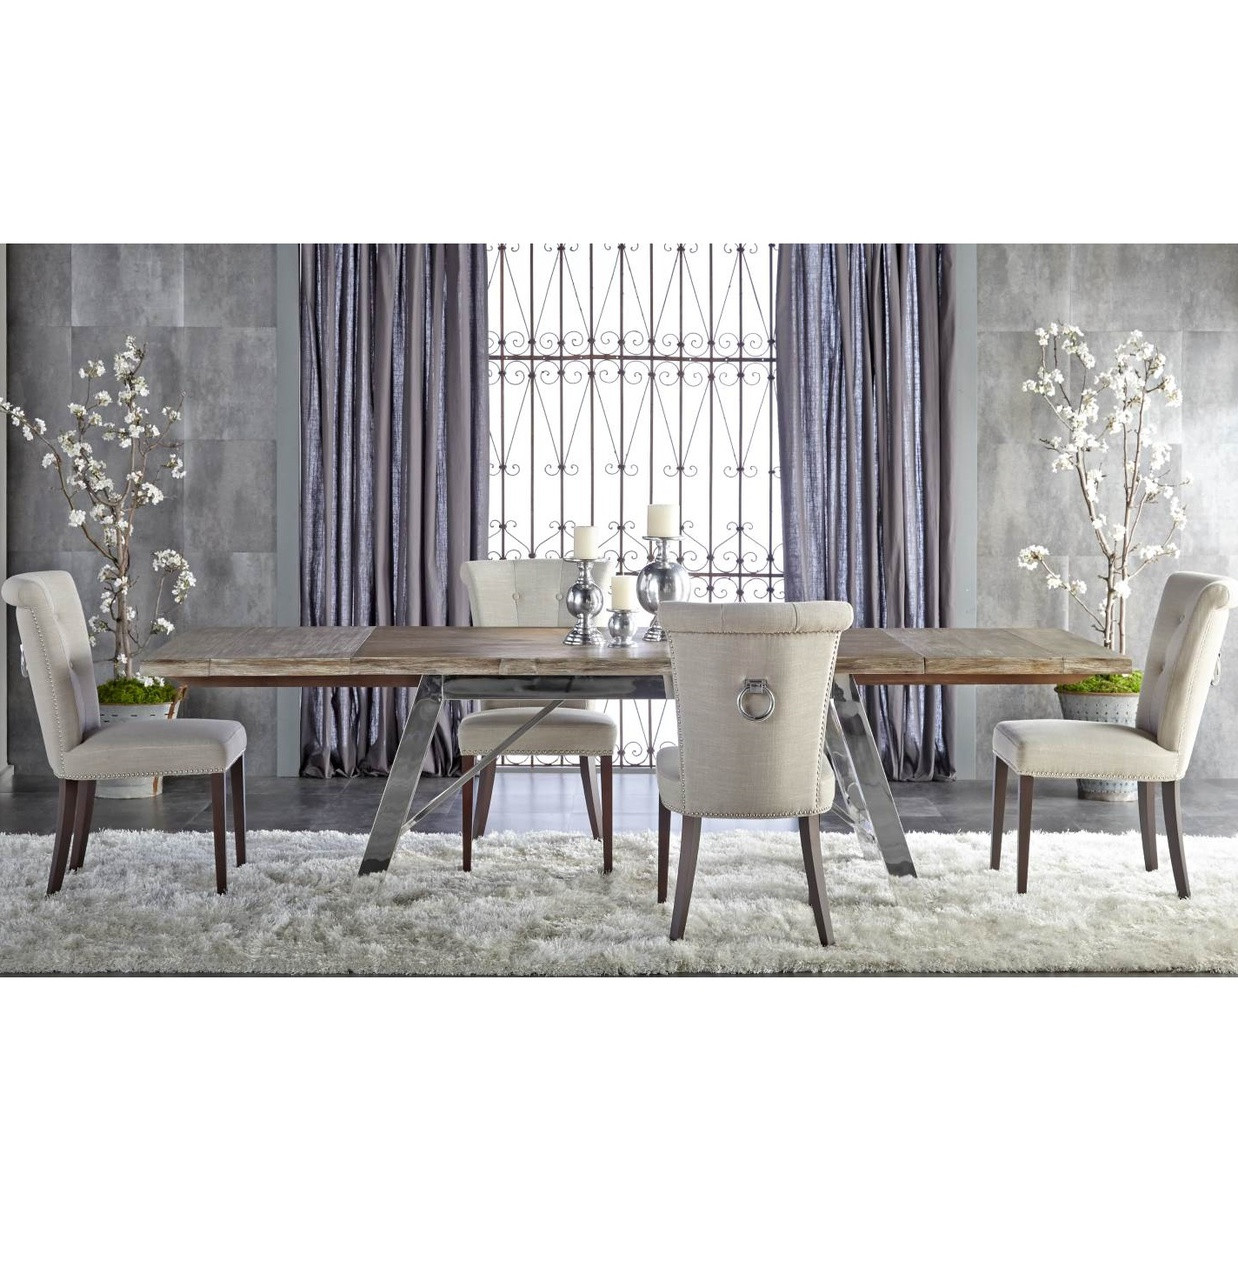 Gray Extension Dining Table With Stainless Steel Legs